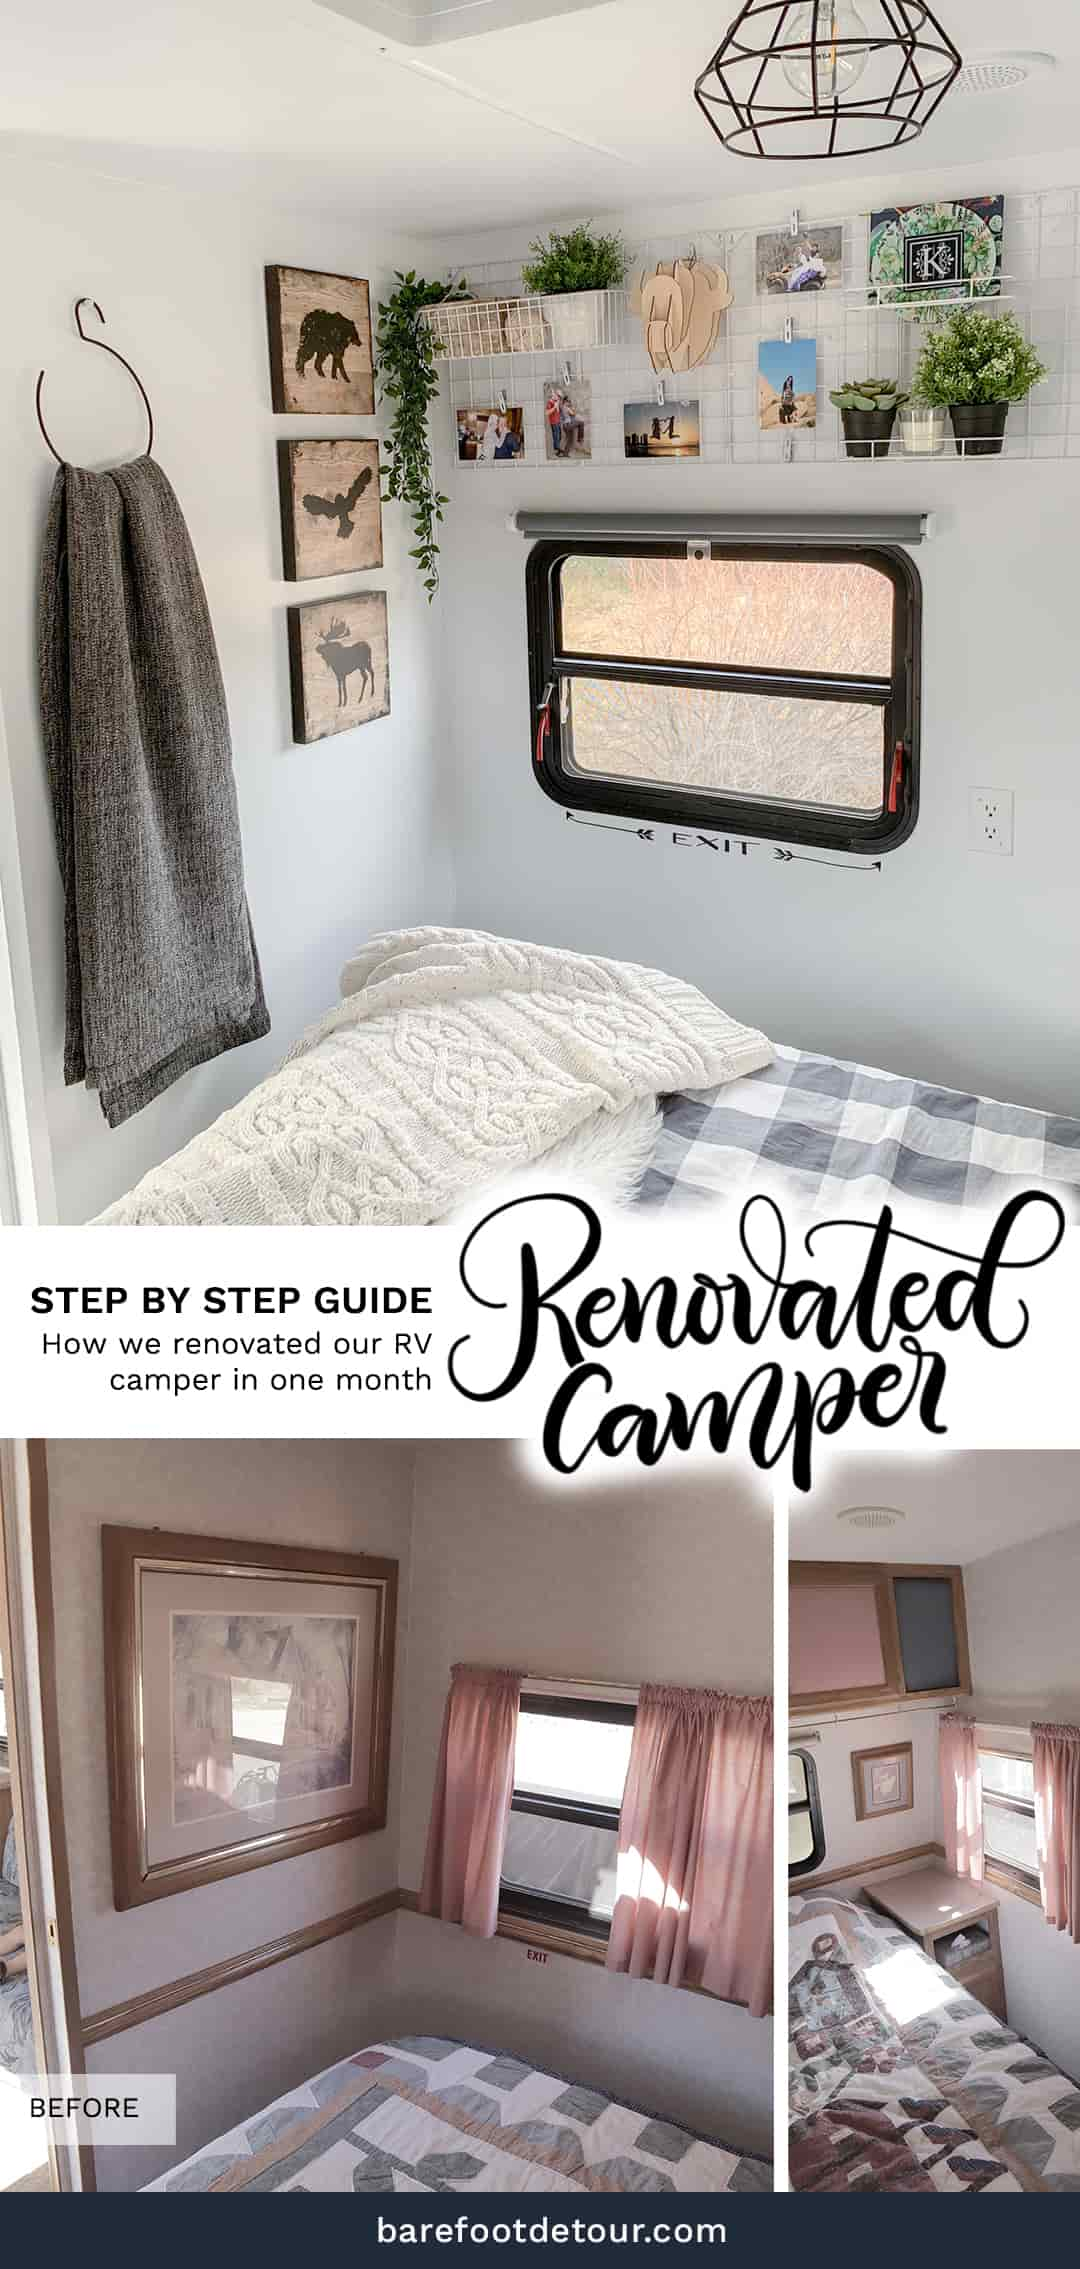 How to renovate a camper